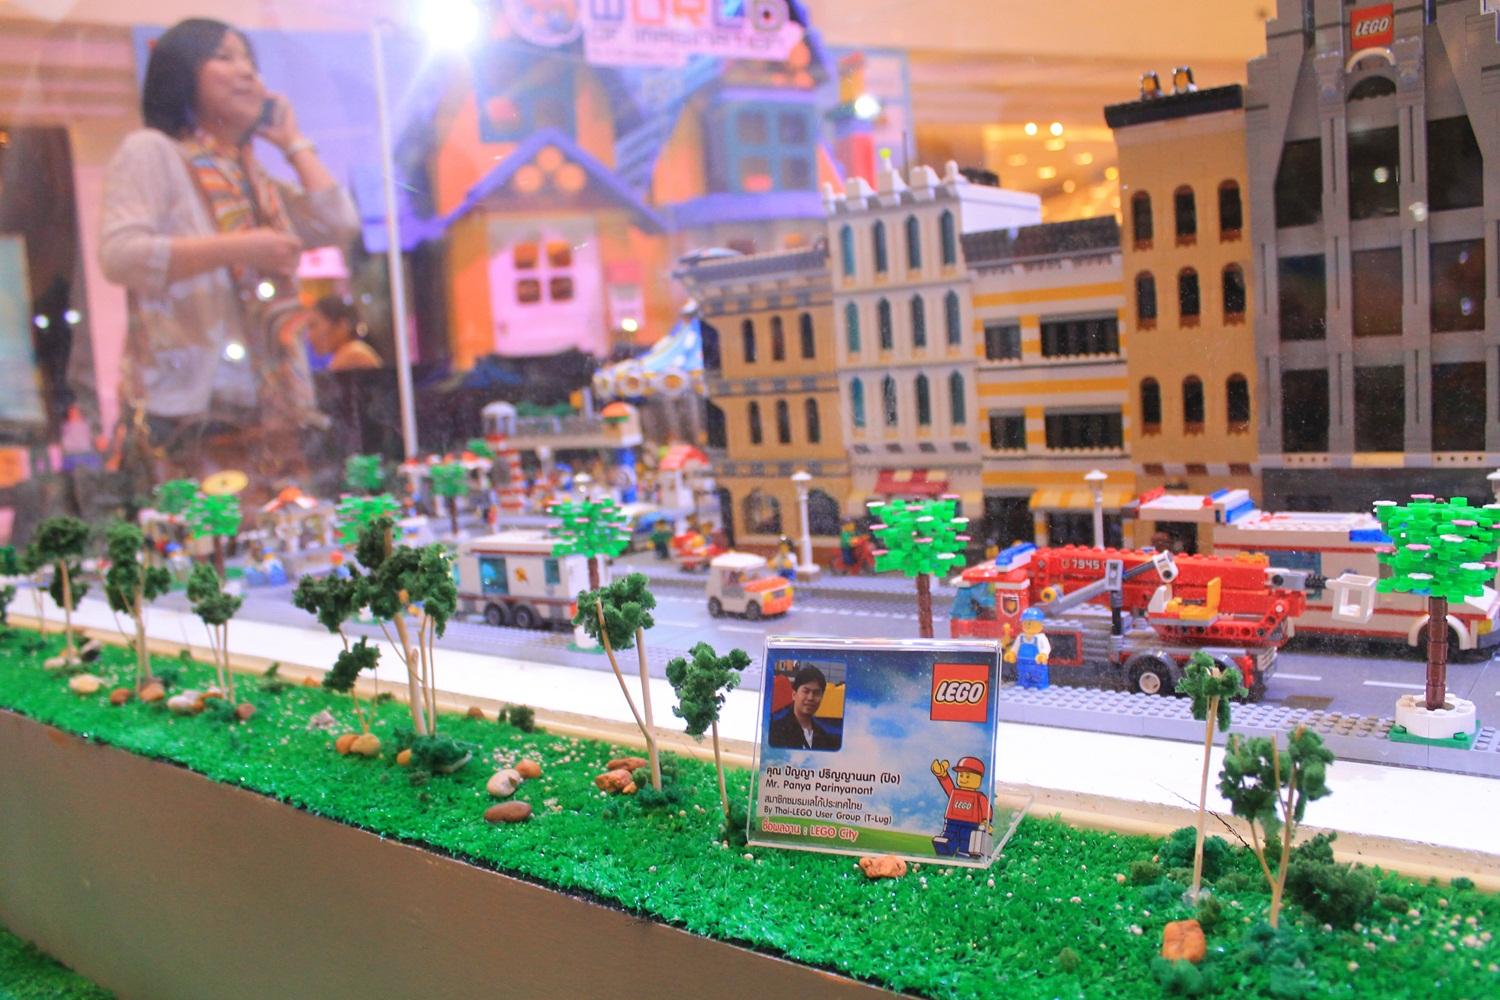 lego_children_day_thailand_2013_6.jpg